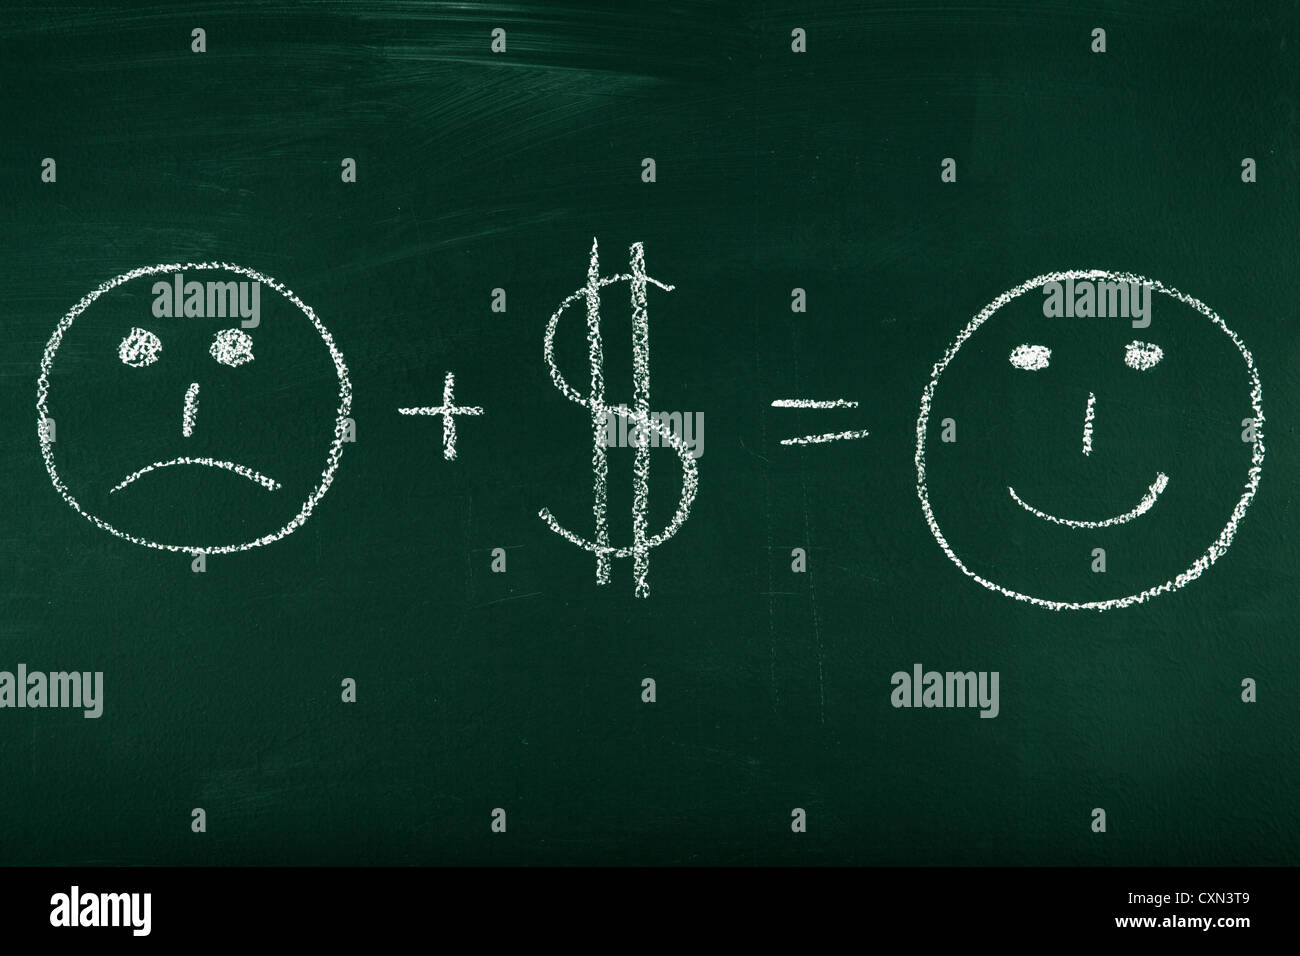 Money can change your life - concept illustrated on chalkboard - Stock Image